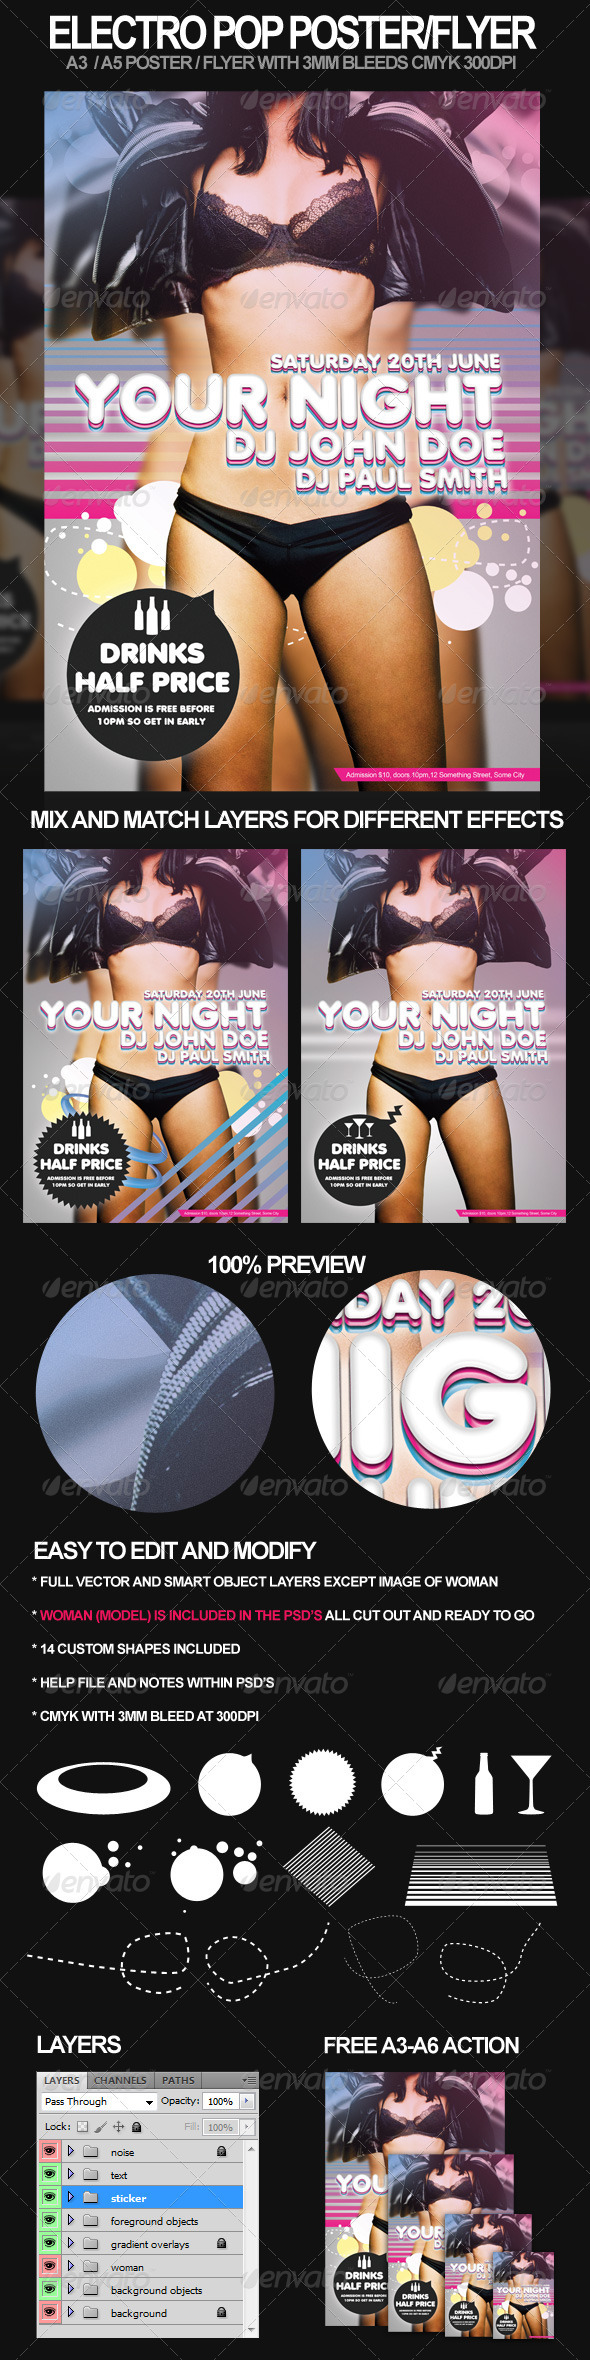 Print Templates - Electro Pop A3 Poster and A5 Flyer | GraphicRiver